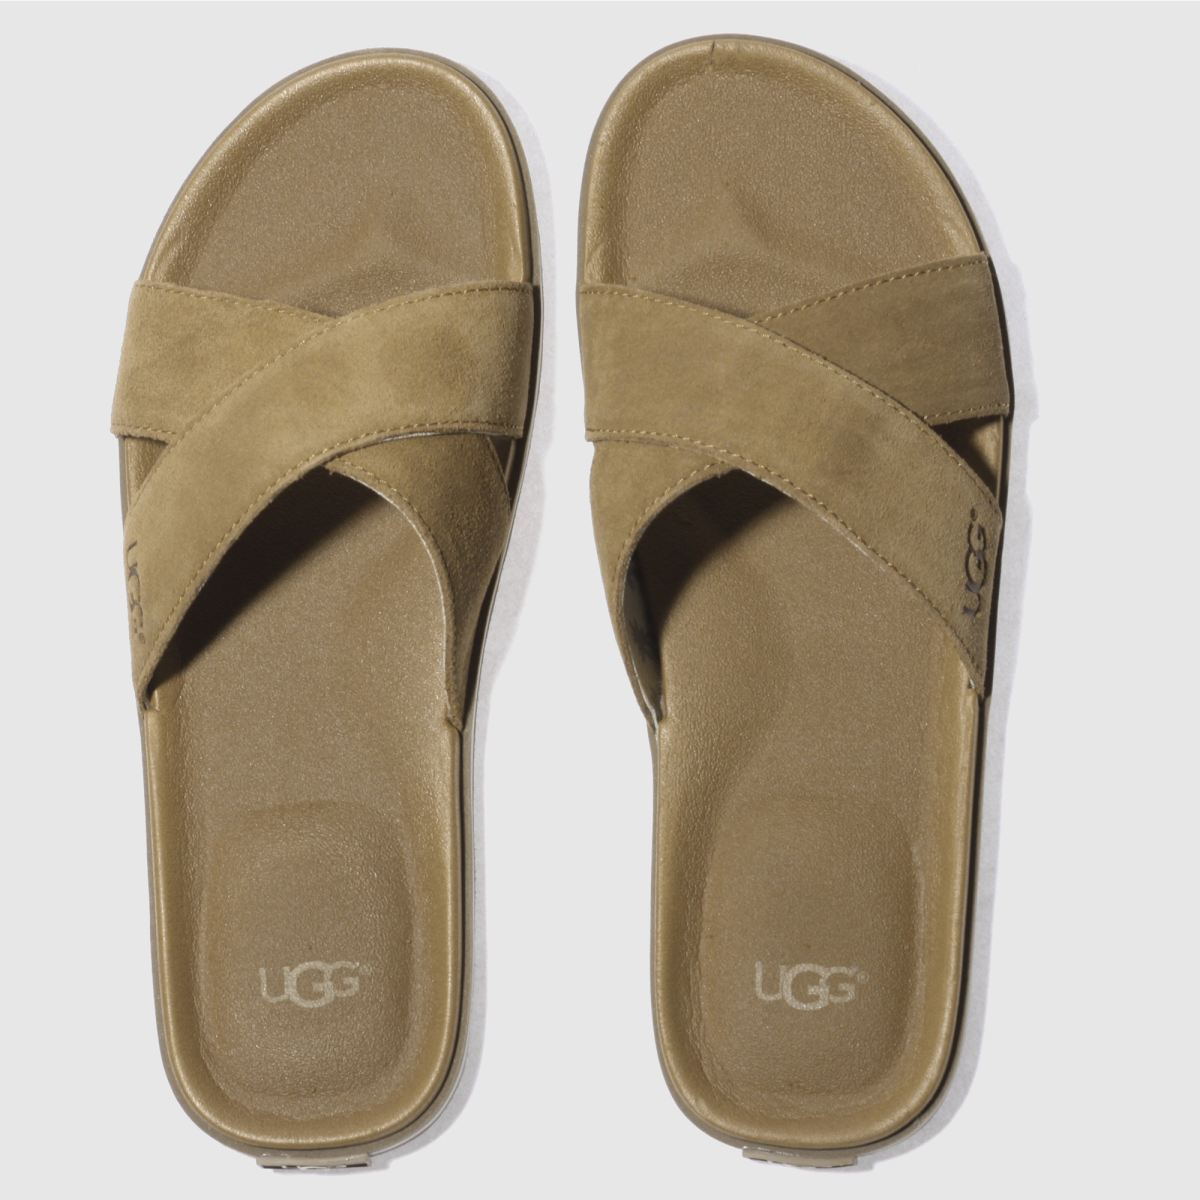 Ugg Tan Ithan Sandals